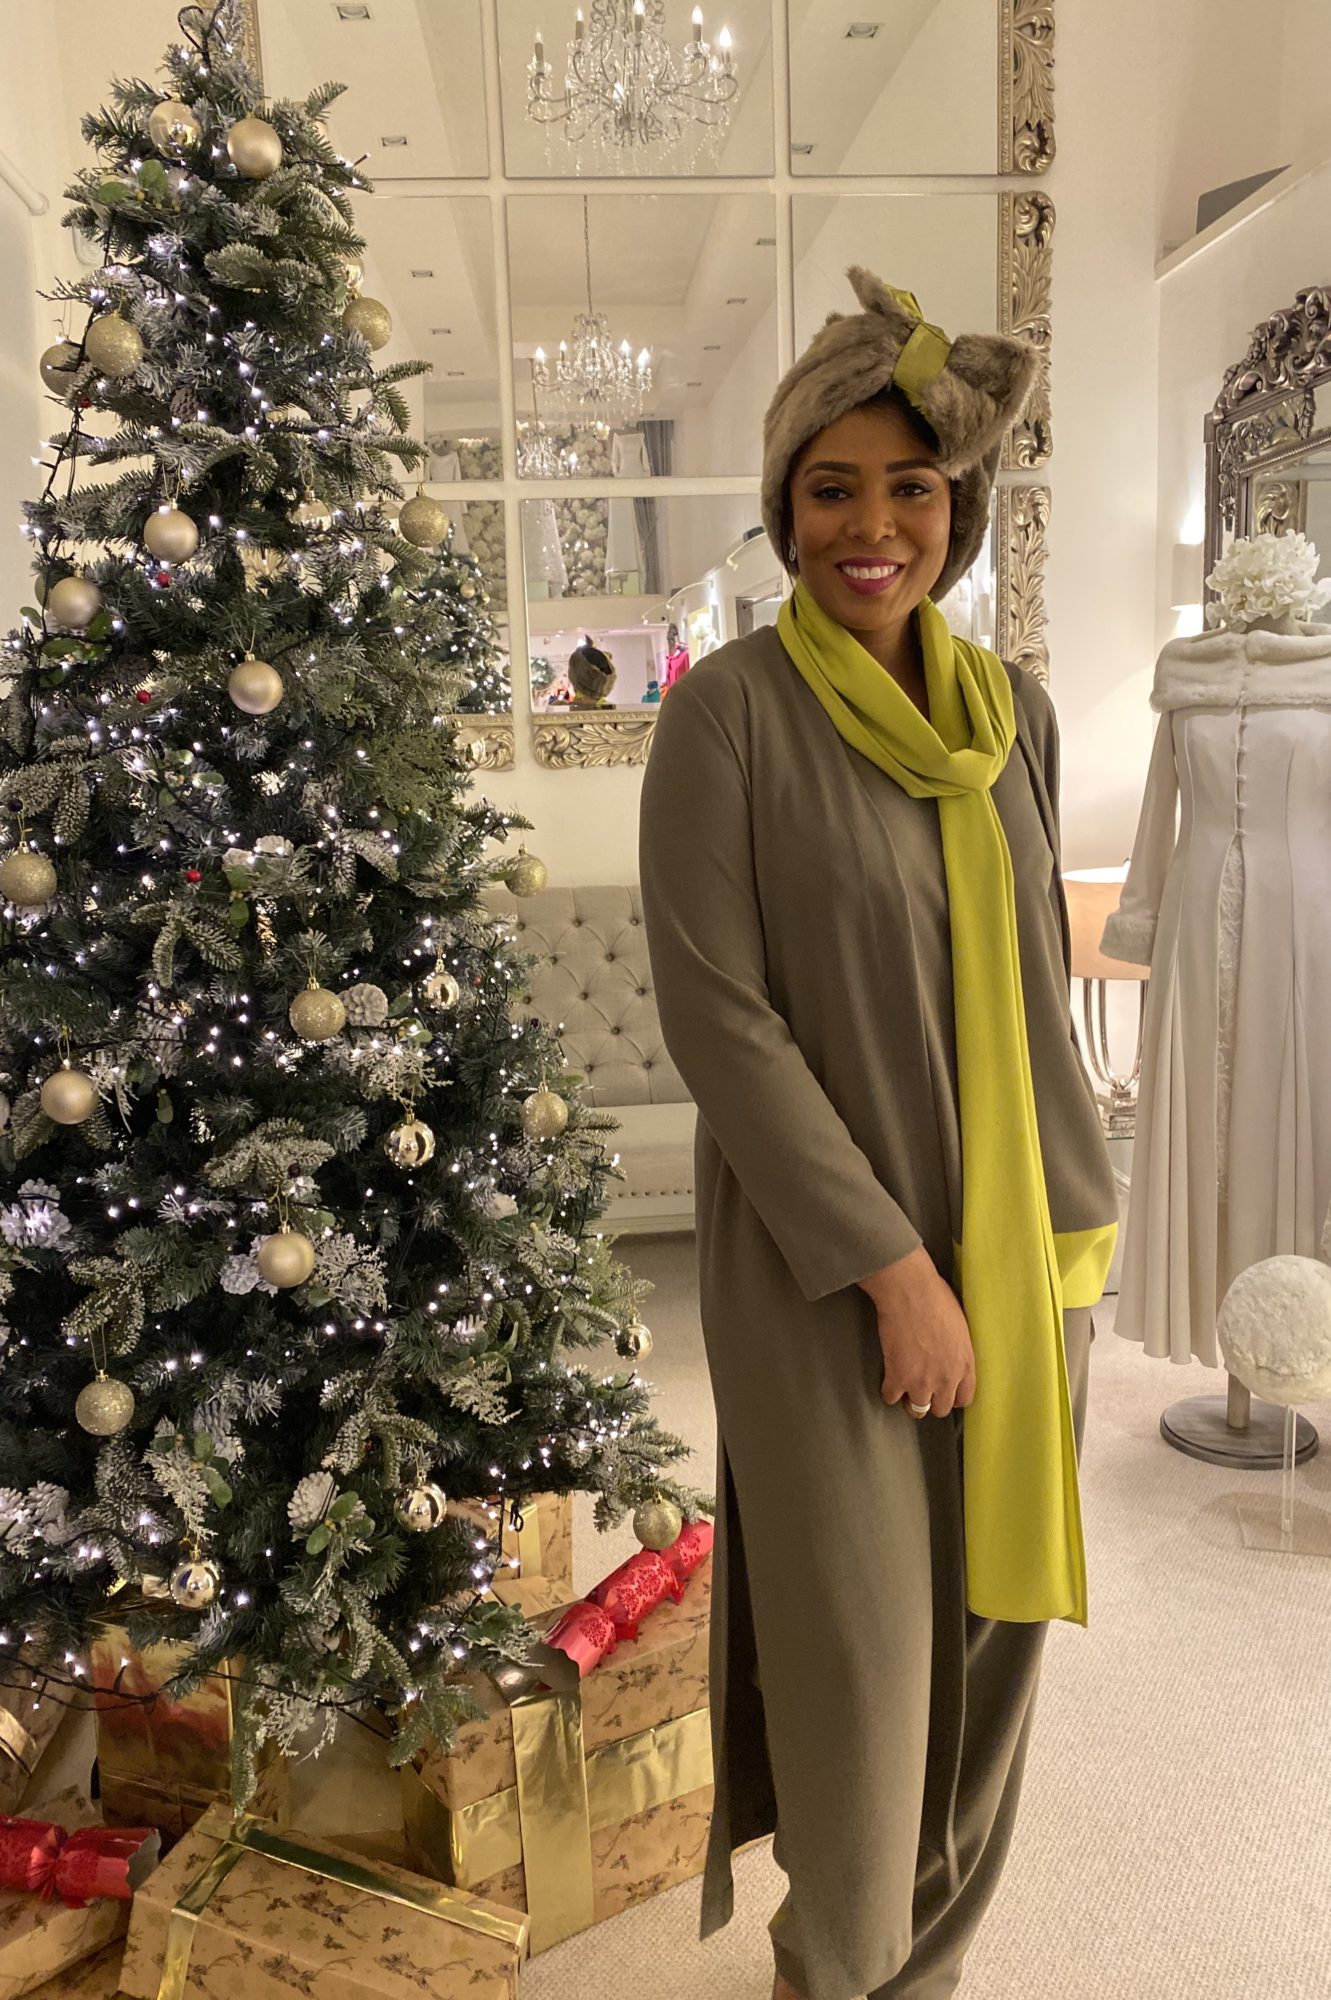 new casual chic outfit Pant suit, Crepe trosers coat tunic and scarf in olive and lime